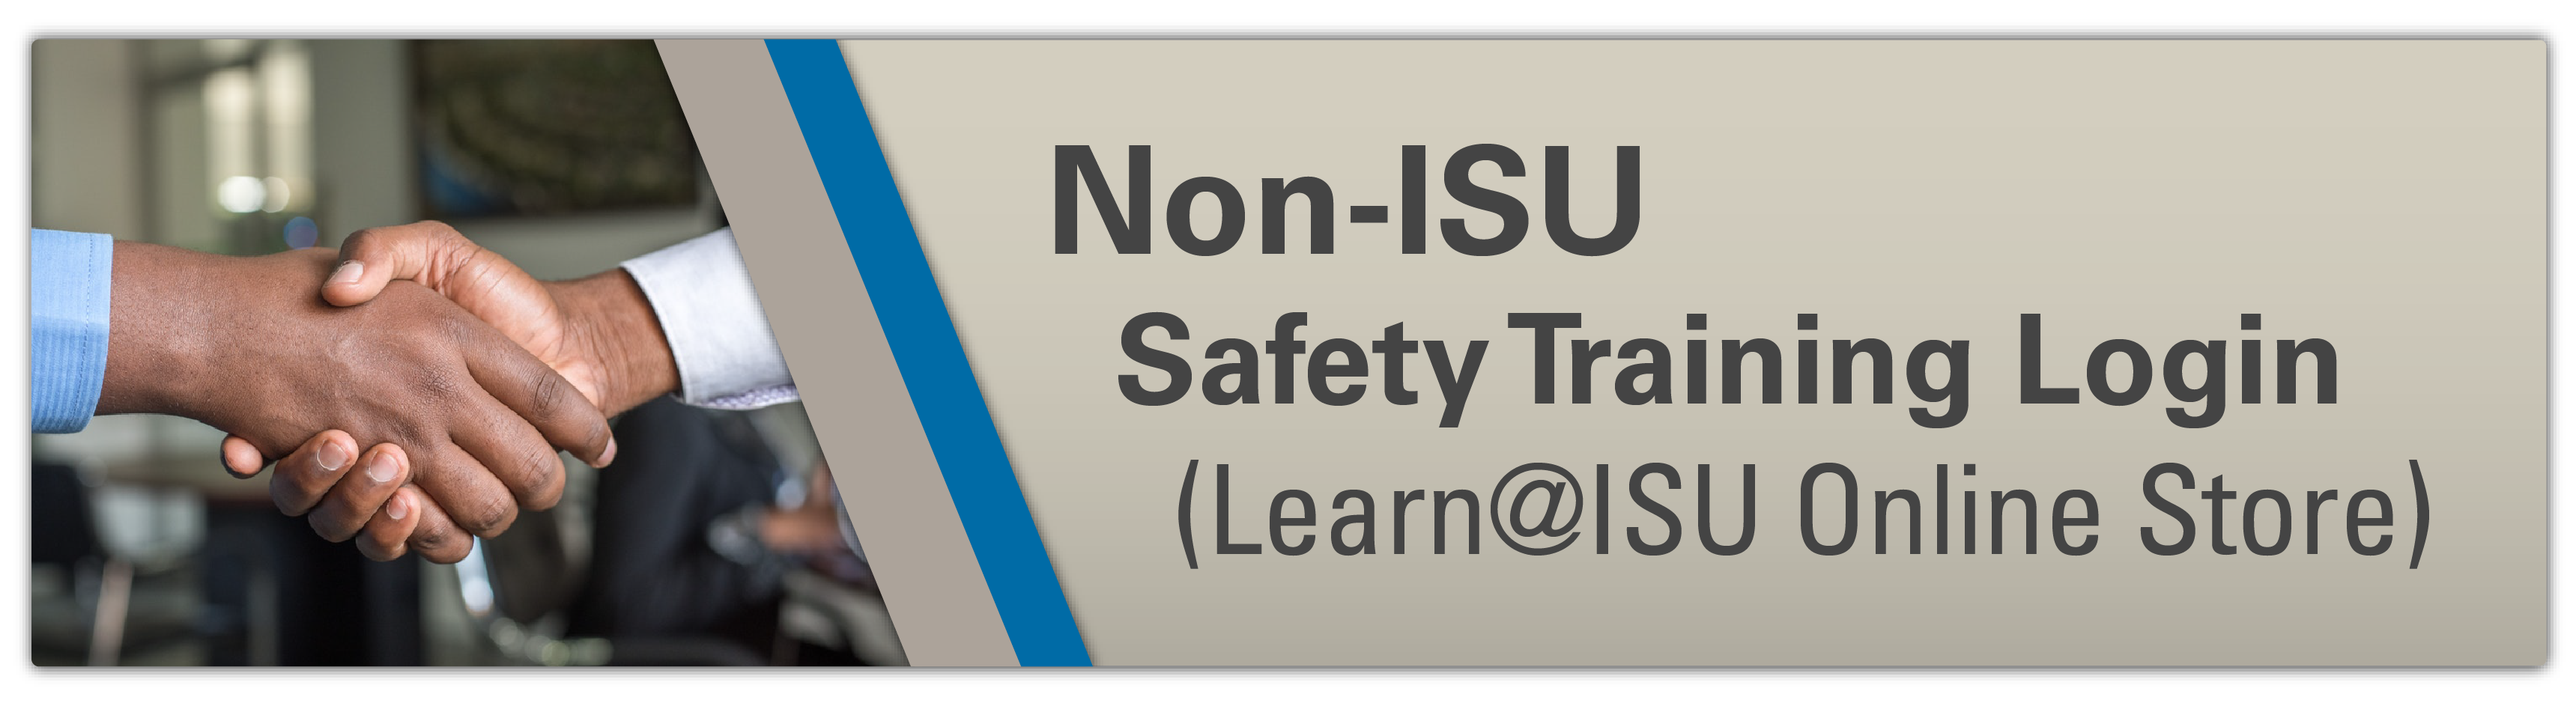 Non-ISU Employees Safety Training Login (Learn@ISU)